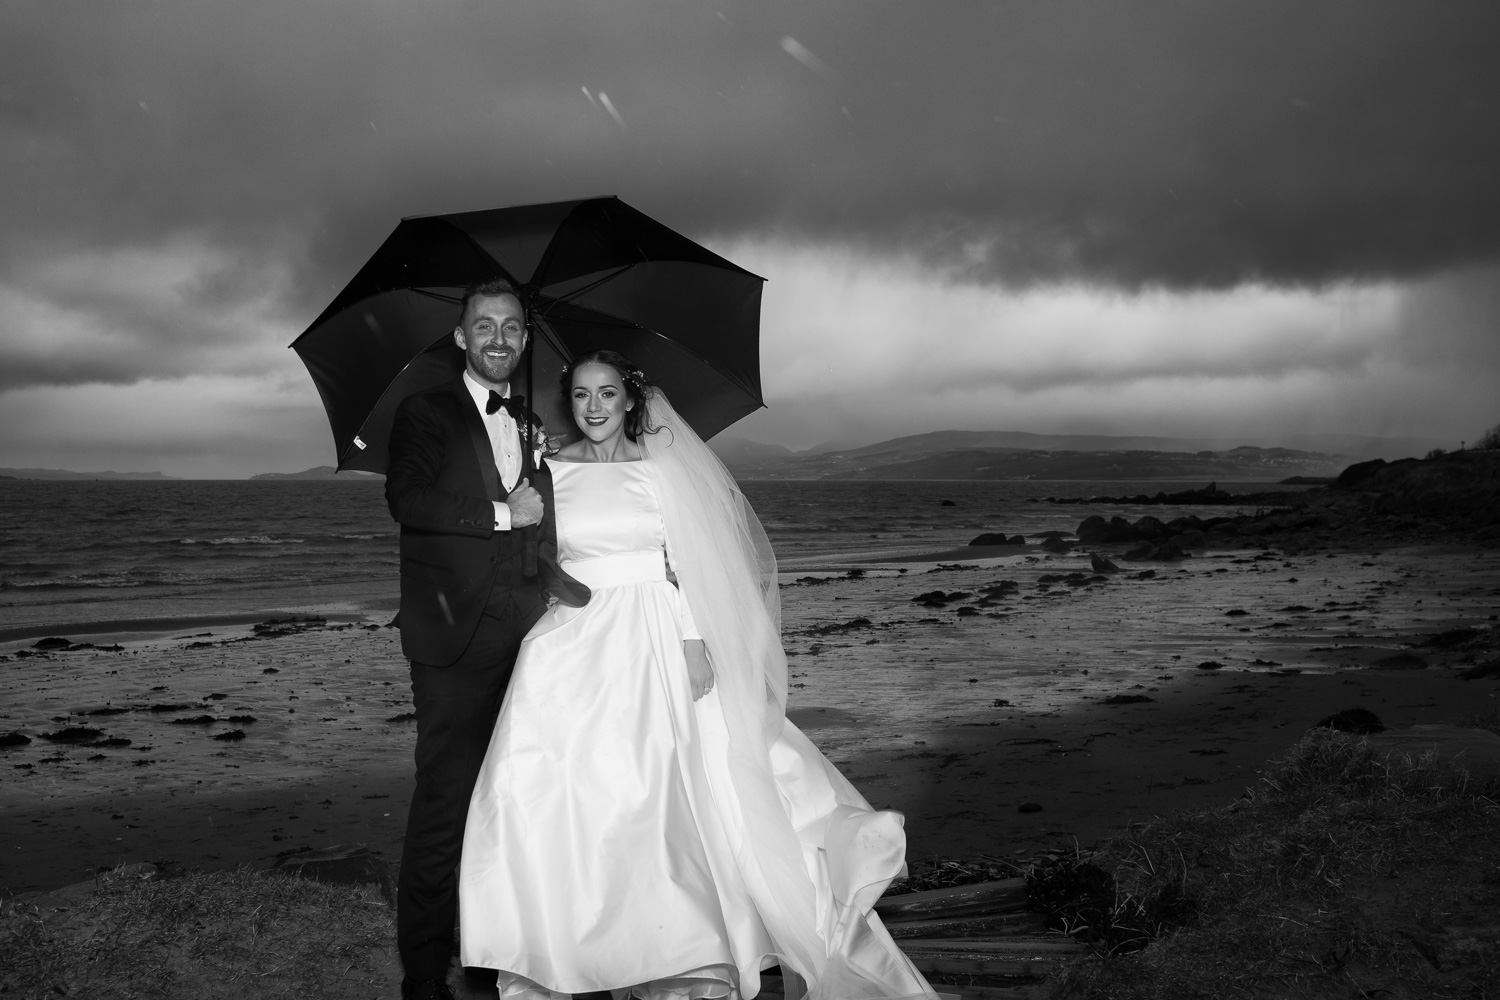 Mark_Barnes_Northern_Ireland_wedding_photographer_Innishowen_Gateway_Donegal_Wedding_photography_Donegal_wedding_photographer-41.jpg